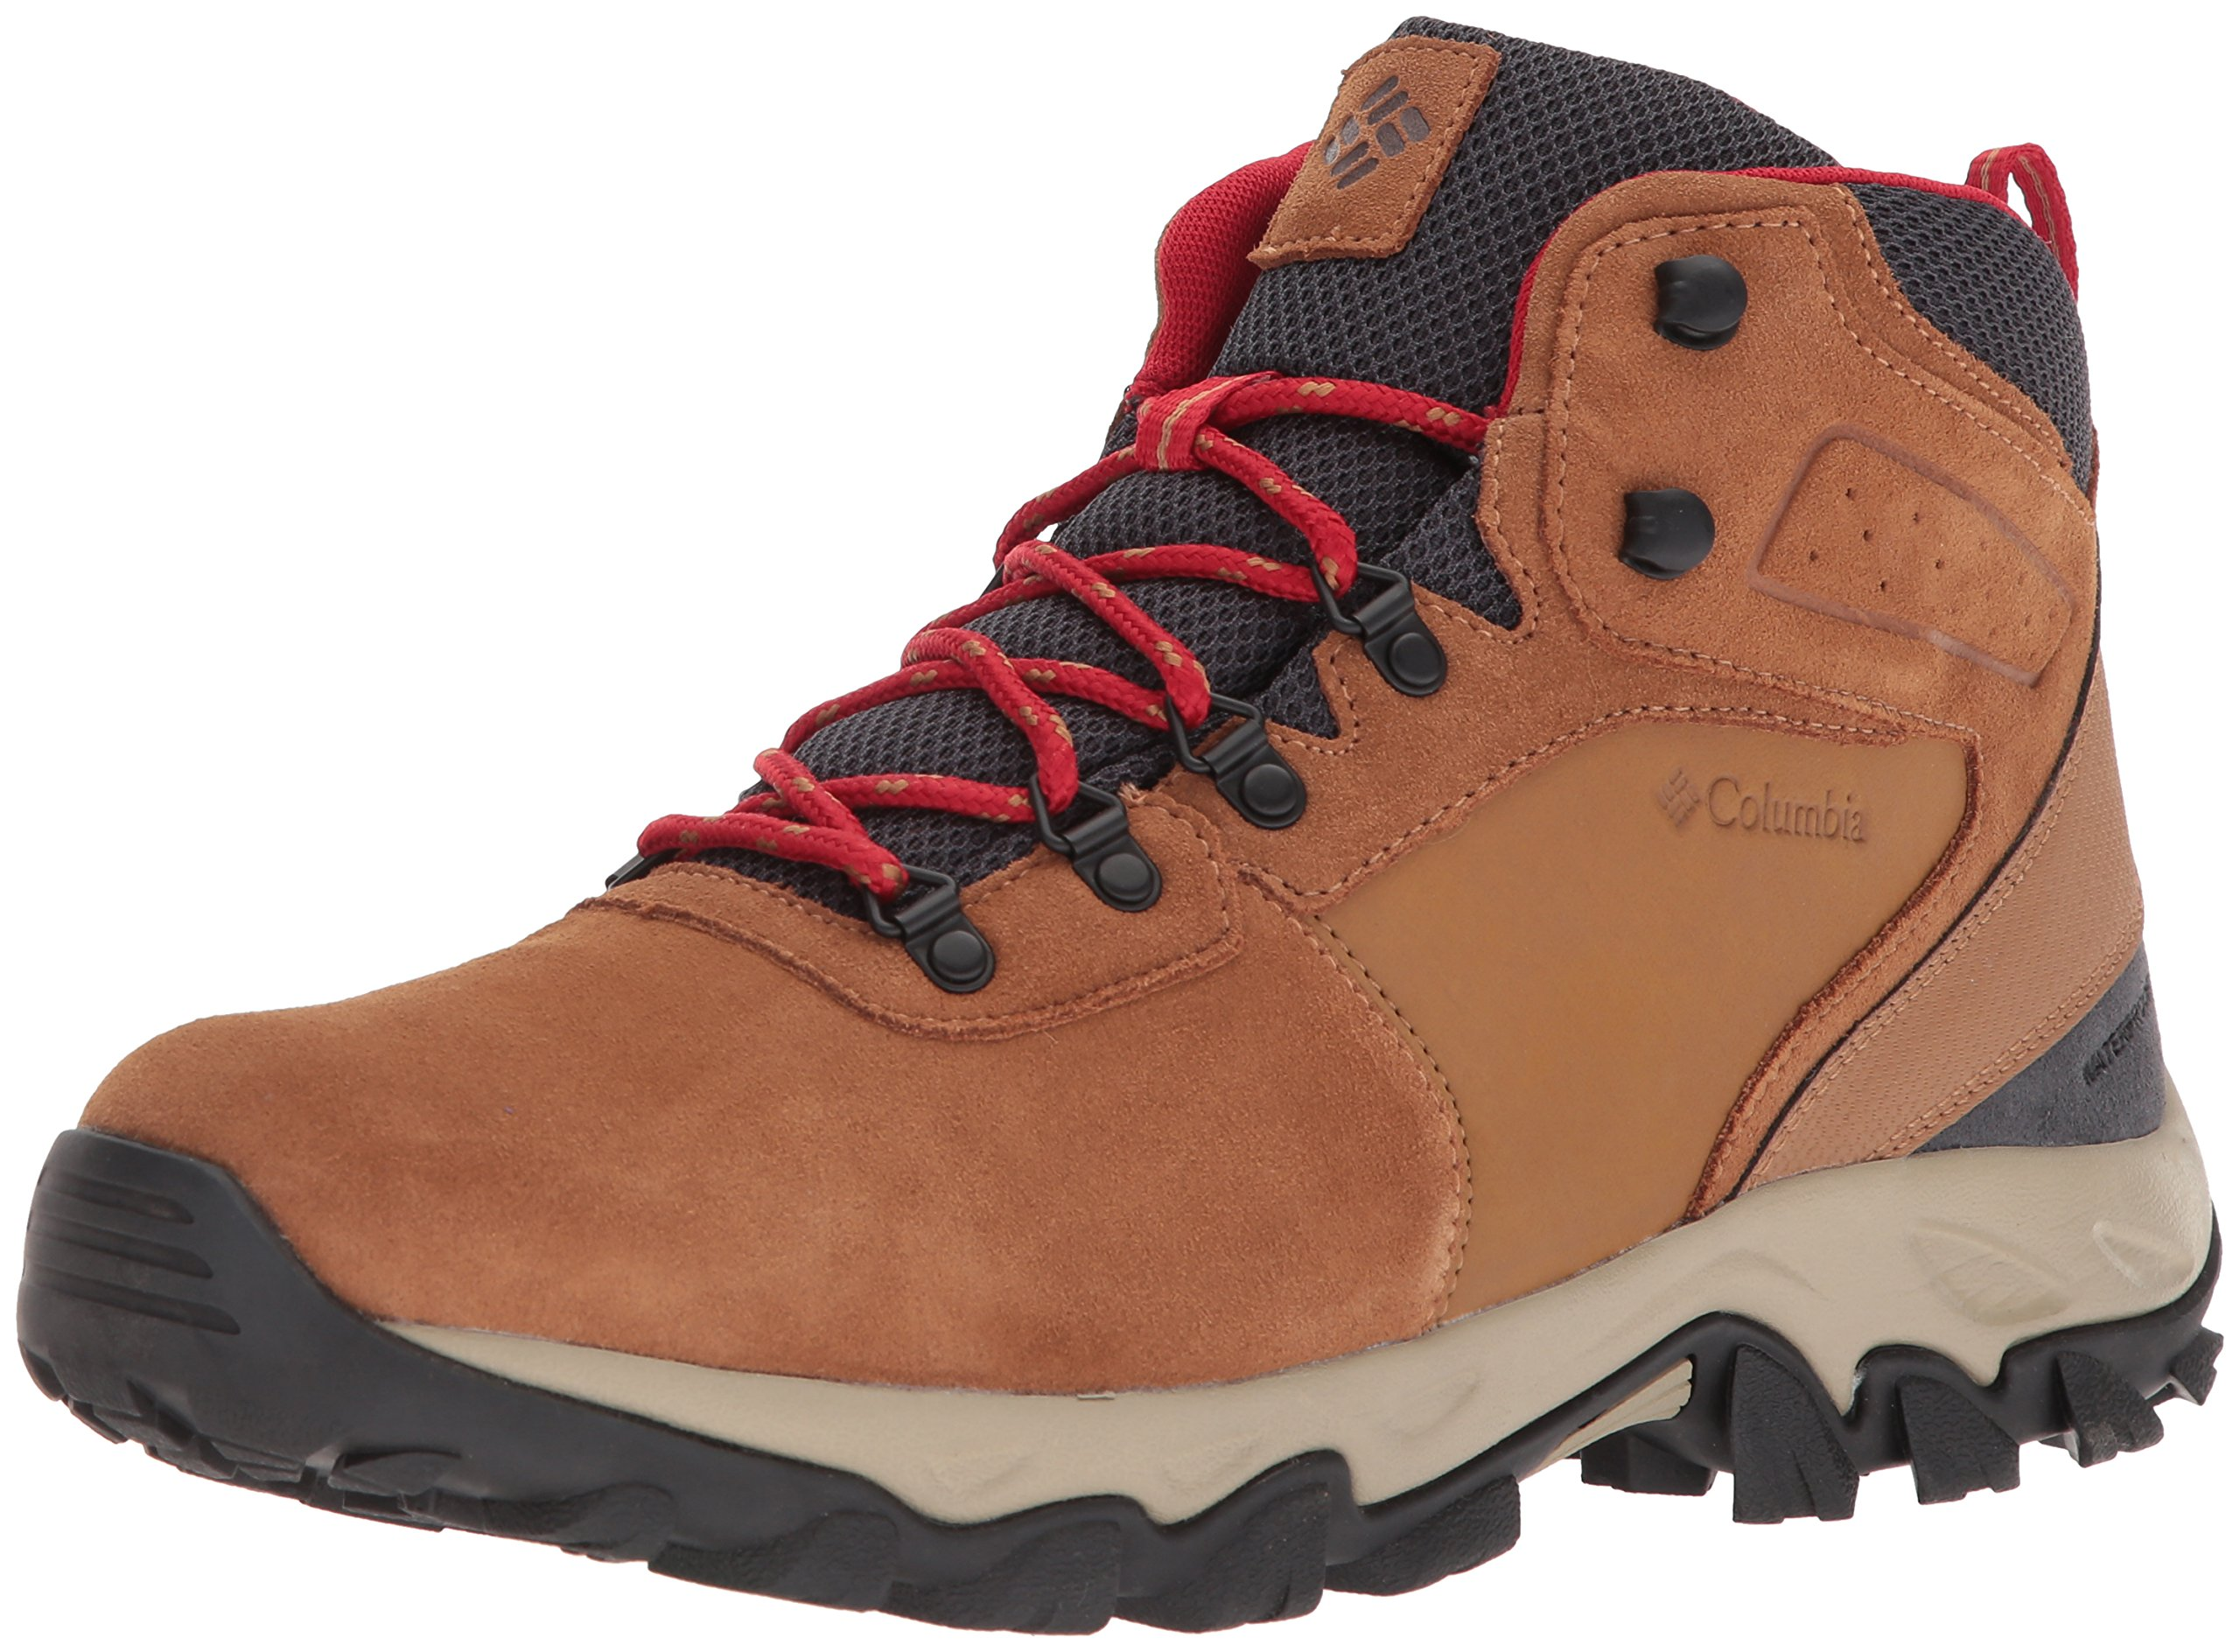 Columbia Men's Newton Ridge Plus II Suede Waterproof Boot Wide, Breathable High-Traction Grip, elk, Mountain red, 7 US